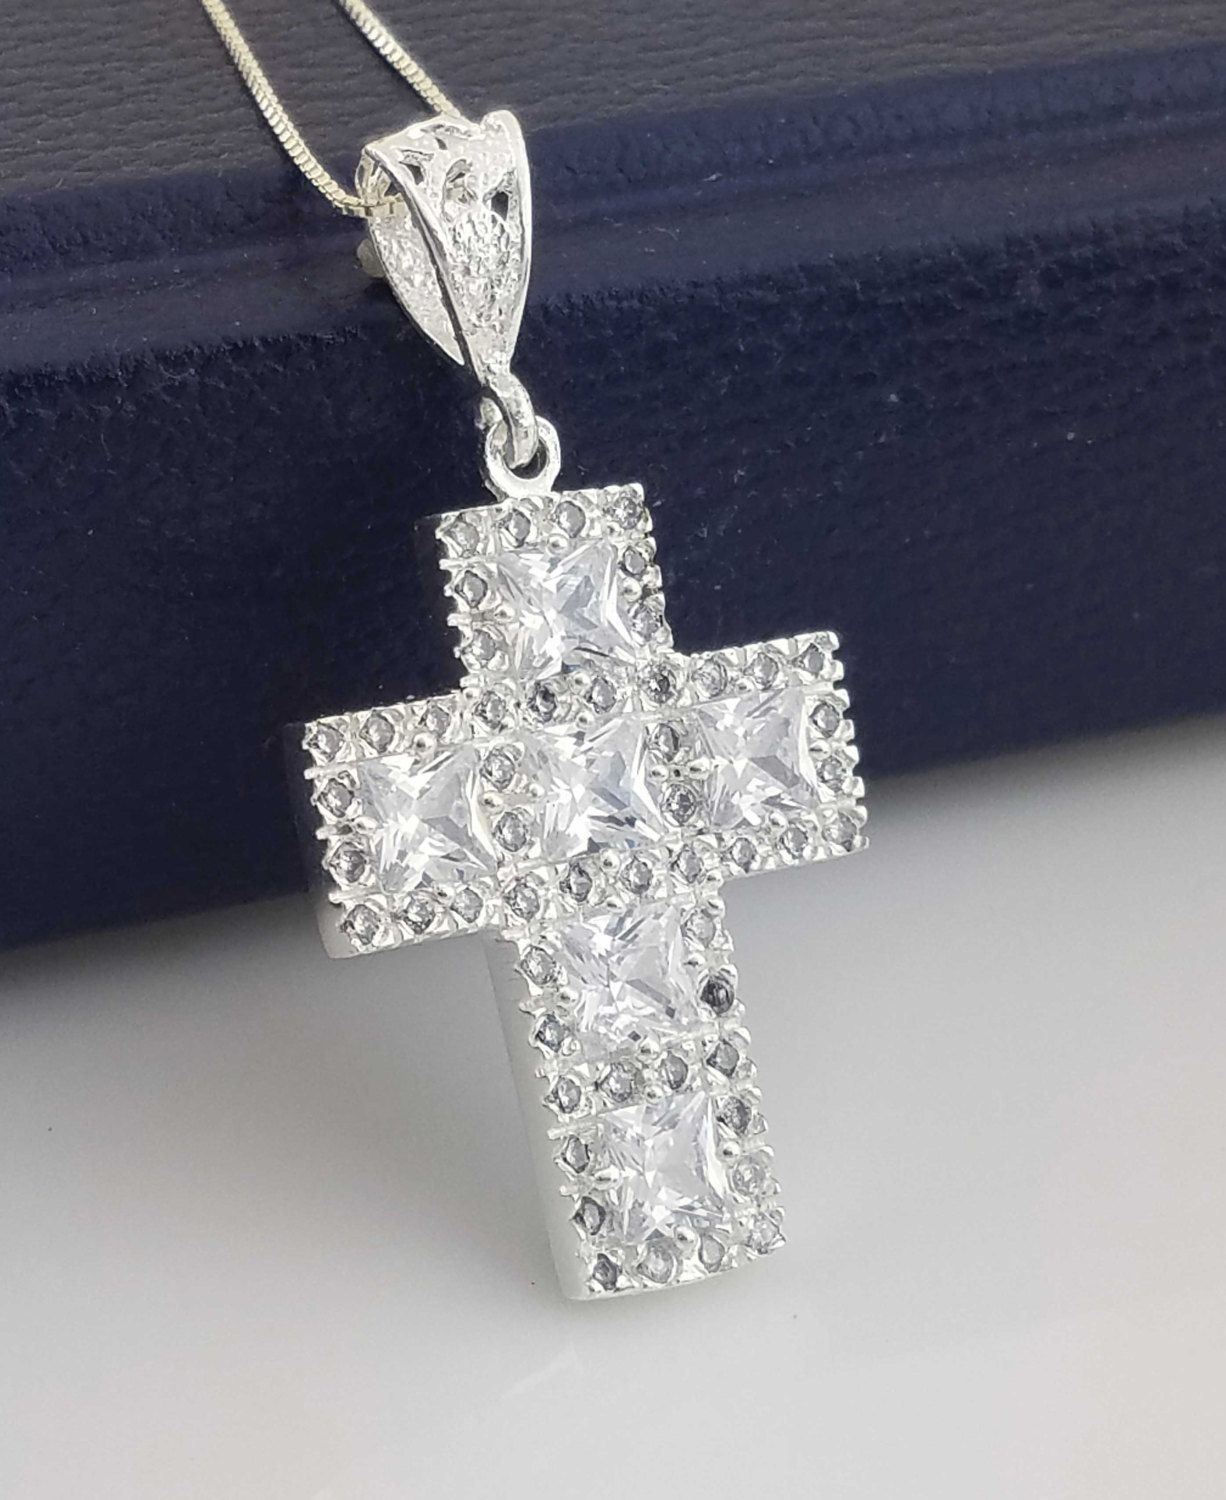 Sterling silver cross necklace silver cross cz necklace cz large sterling silver cross necklace silver cross cz necklace cz large cross necklace sliver aloadofball Image collections